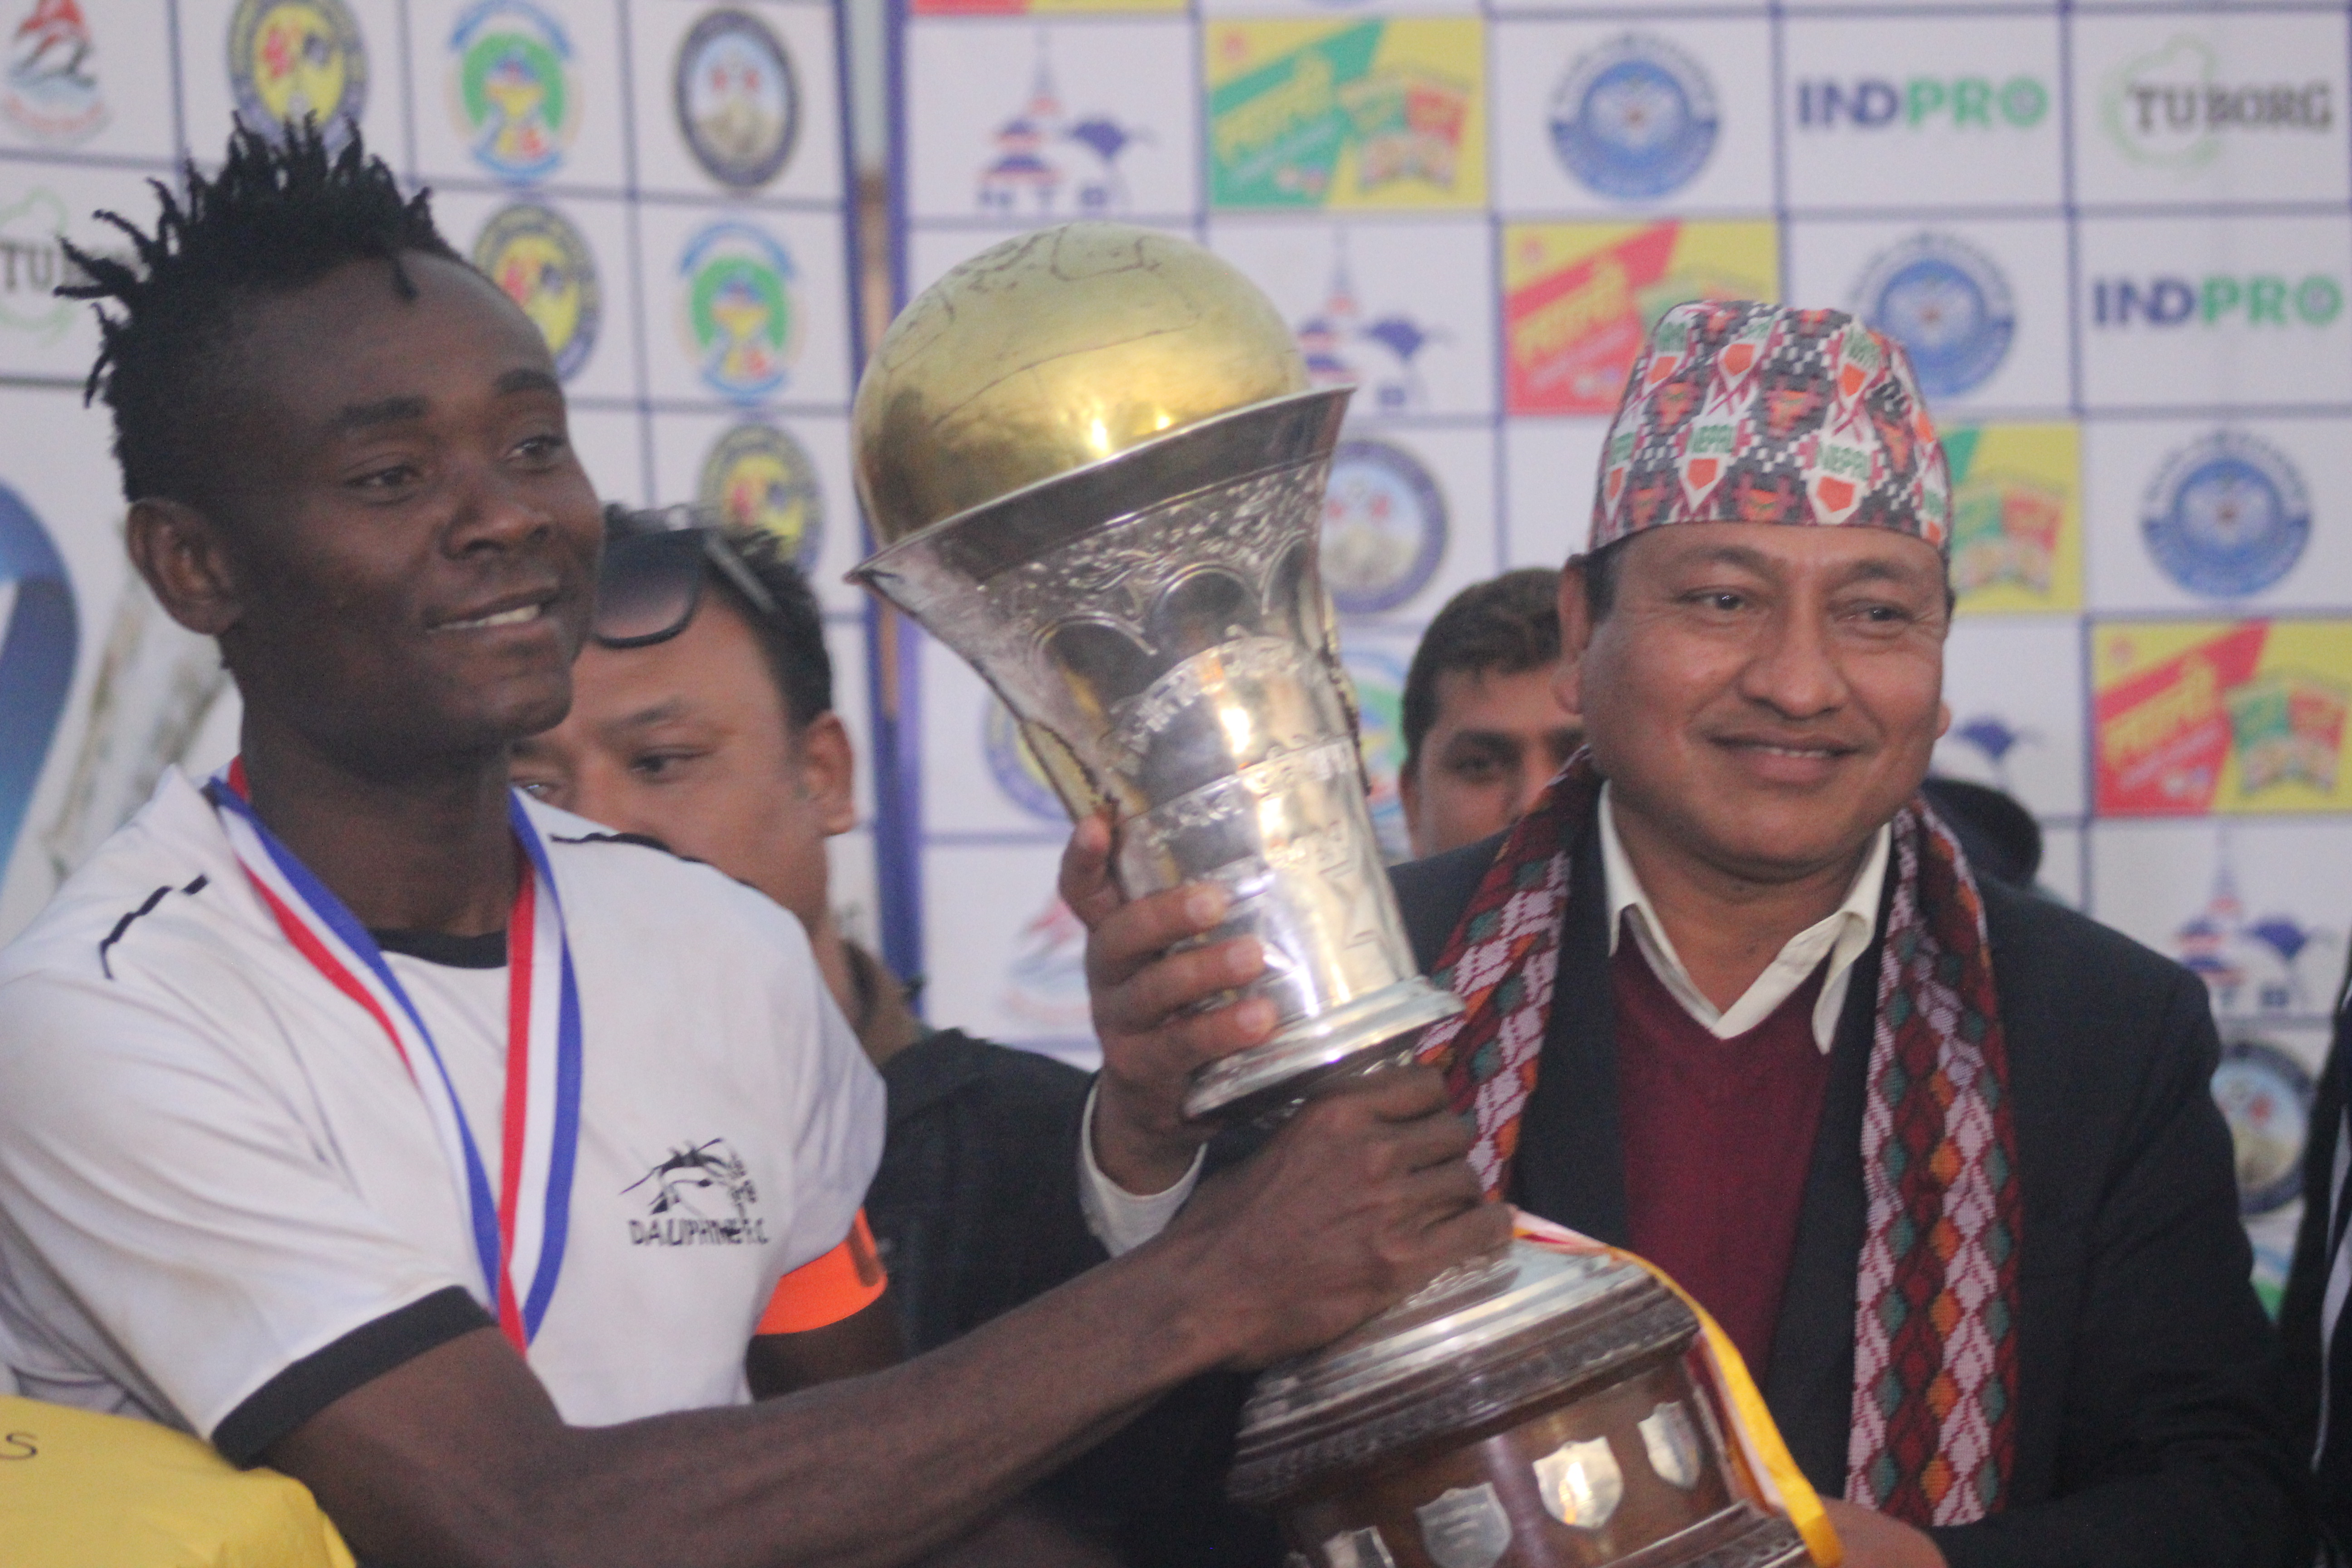 NSC Member Secretary Keshab Kumar Bista handing over the trophy to Dauphins Family Club player after the 21st Tilottama Gold Cup in Butwal on Monday. Photo: THT